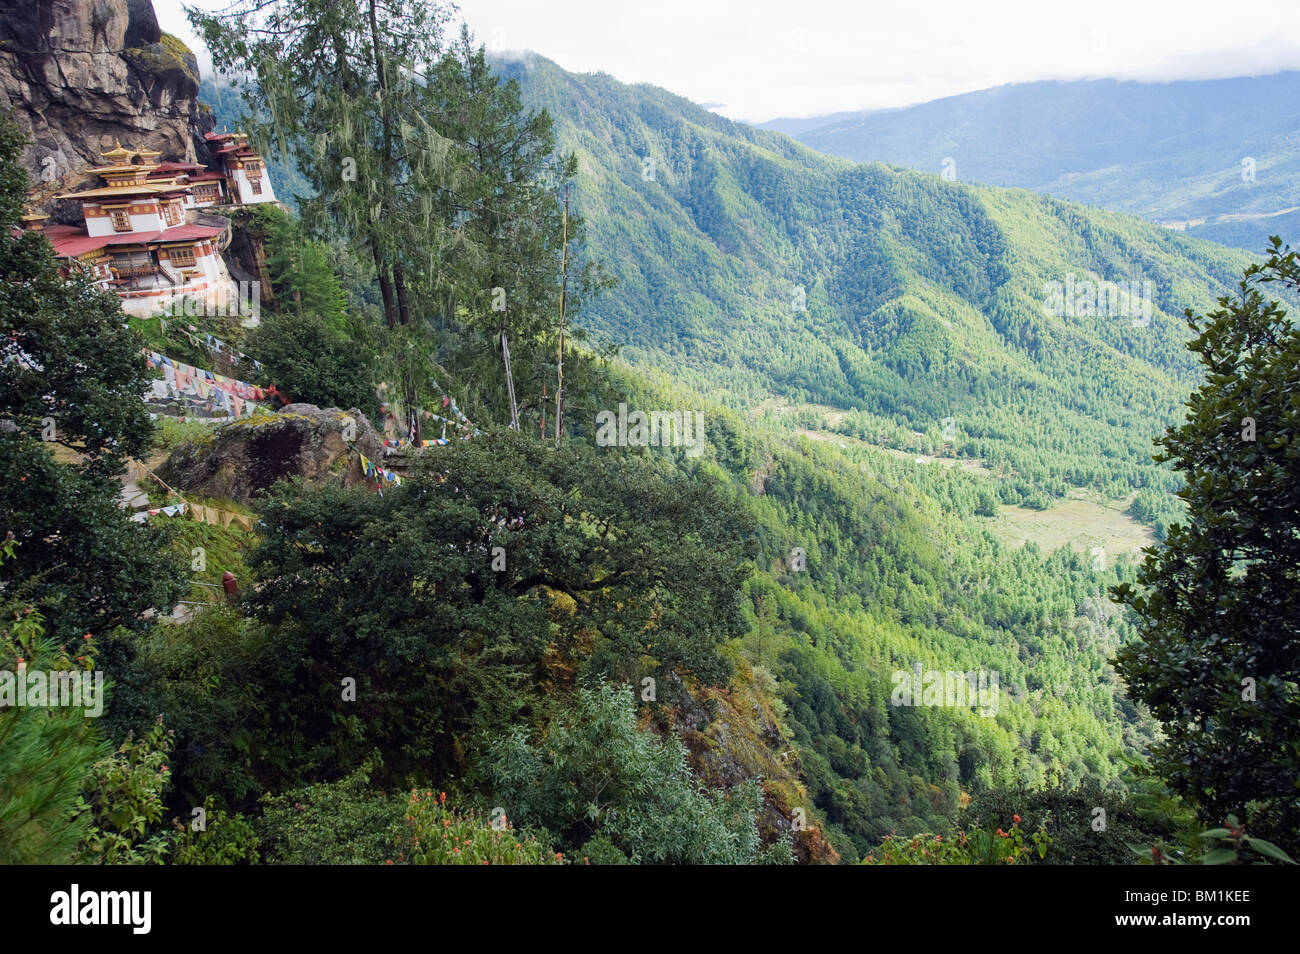 Tigers Nest (Taktsang Goemba), above Paro Valley, Bhutan, Asia - Stock Image